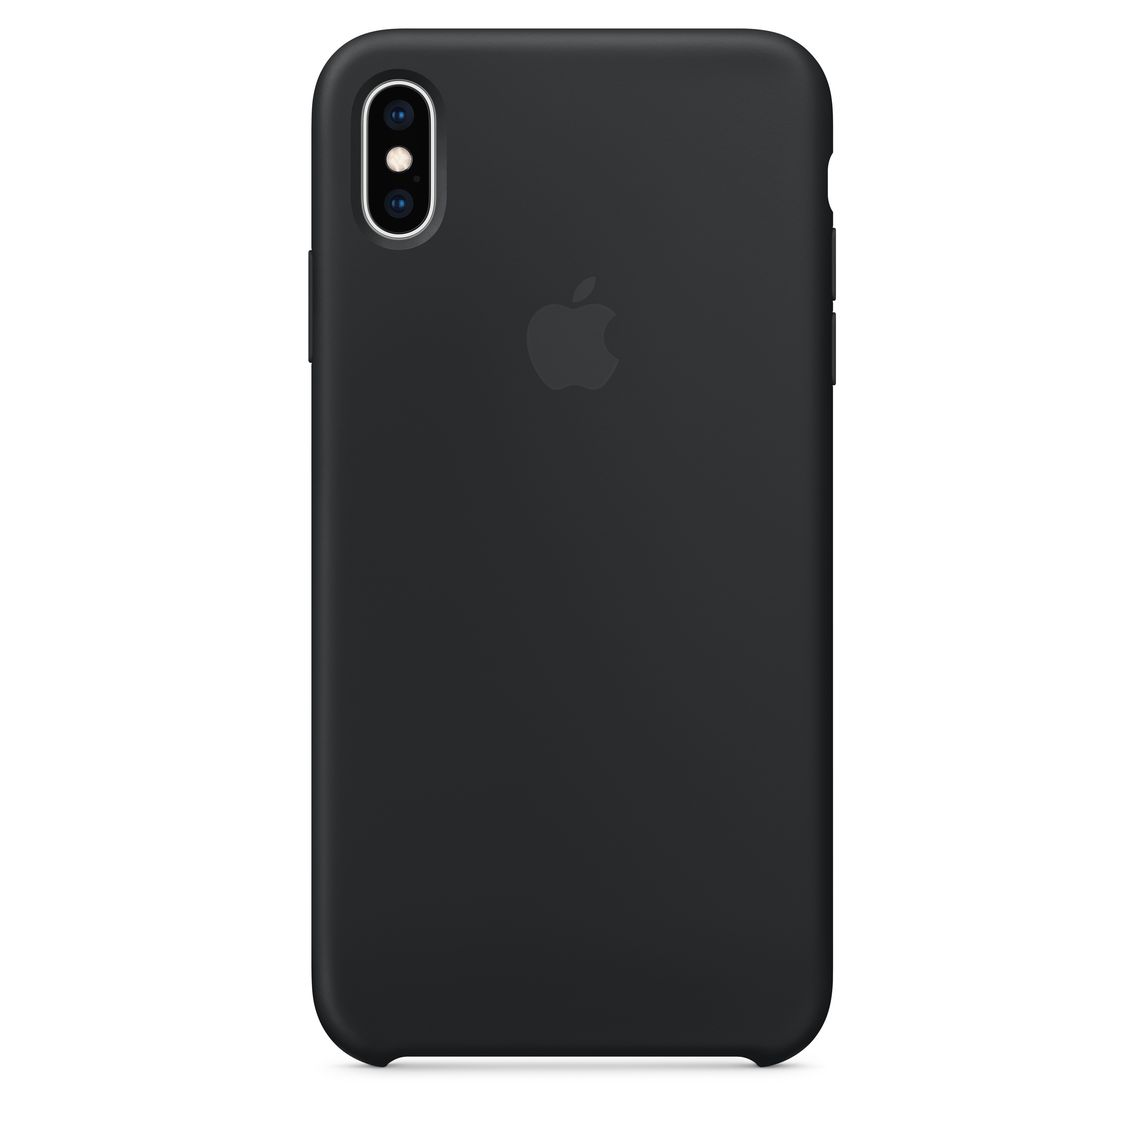 Custodia in silicone per iPhone XS Max - Bianco - Apple (IT)